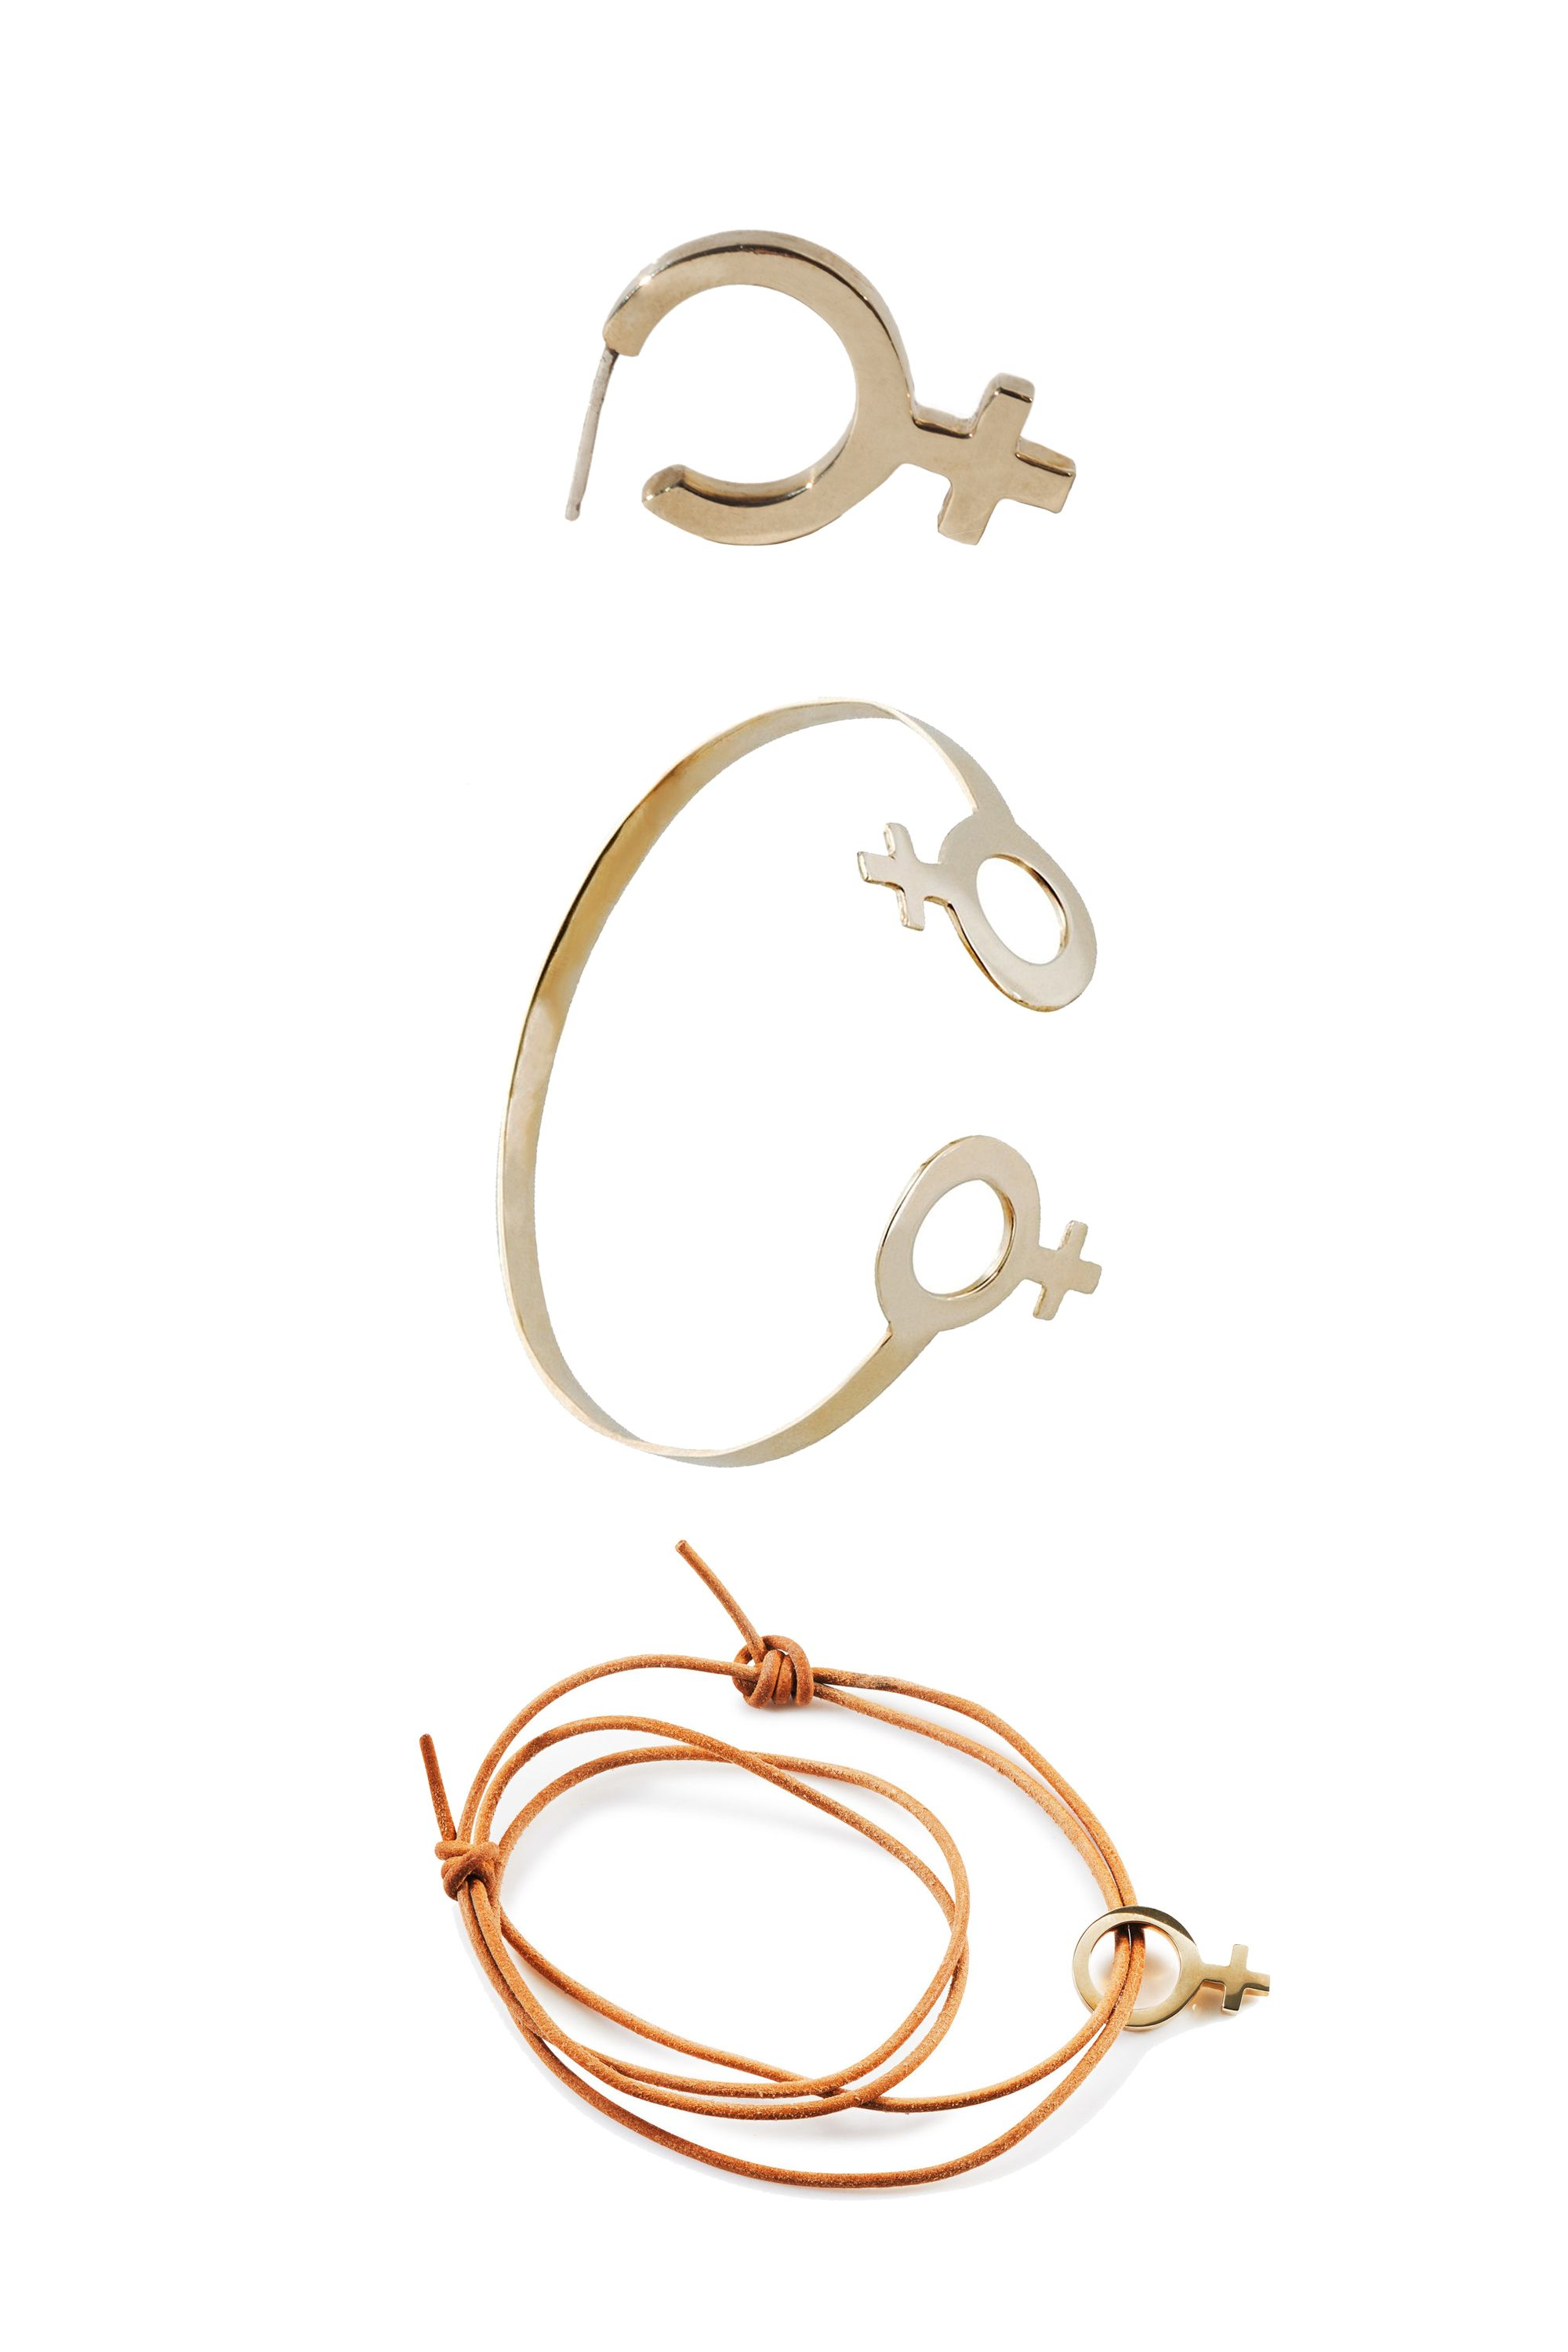 """<p>Brooklyn-based jewelry designer Charlotte Cauwe launched her Female Collection featuring a modern approach to the classic symbol. 25 percentof the proceeds from this three-piece collection will go toward Planned Parenthood.</p><p><em data-redactor-tag=""""em"""" data-verified=""""redactor"""">Charlotte Cauwe Female Collection, $75 to 135;</em><a href=""""http://www.charlottecauwe.com/new-products/?category=FEMALE+COLLECTION"""" data-tracking-id=""""recirc-text-link""""><em data-redactor-tag=""""em"""" data-verified=""""redactor"""">charlottecauwe.com</em></a></p>"""